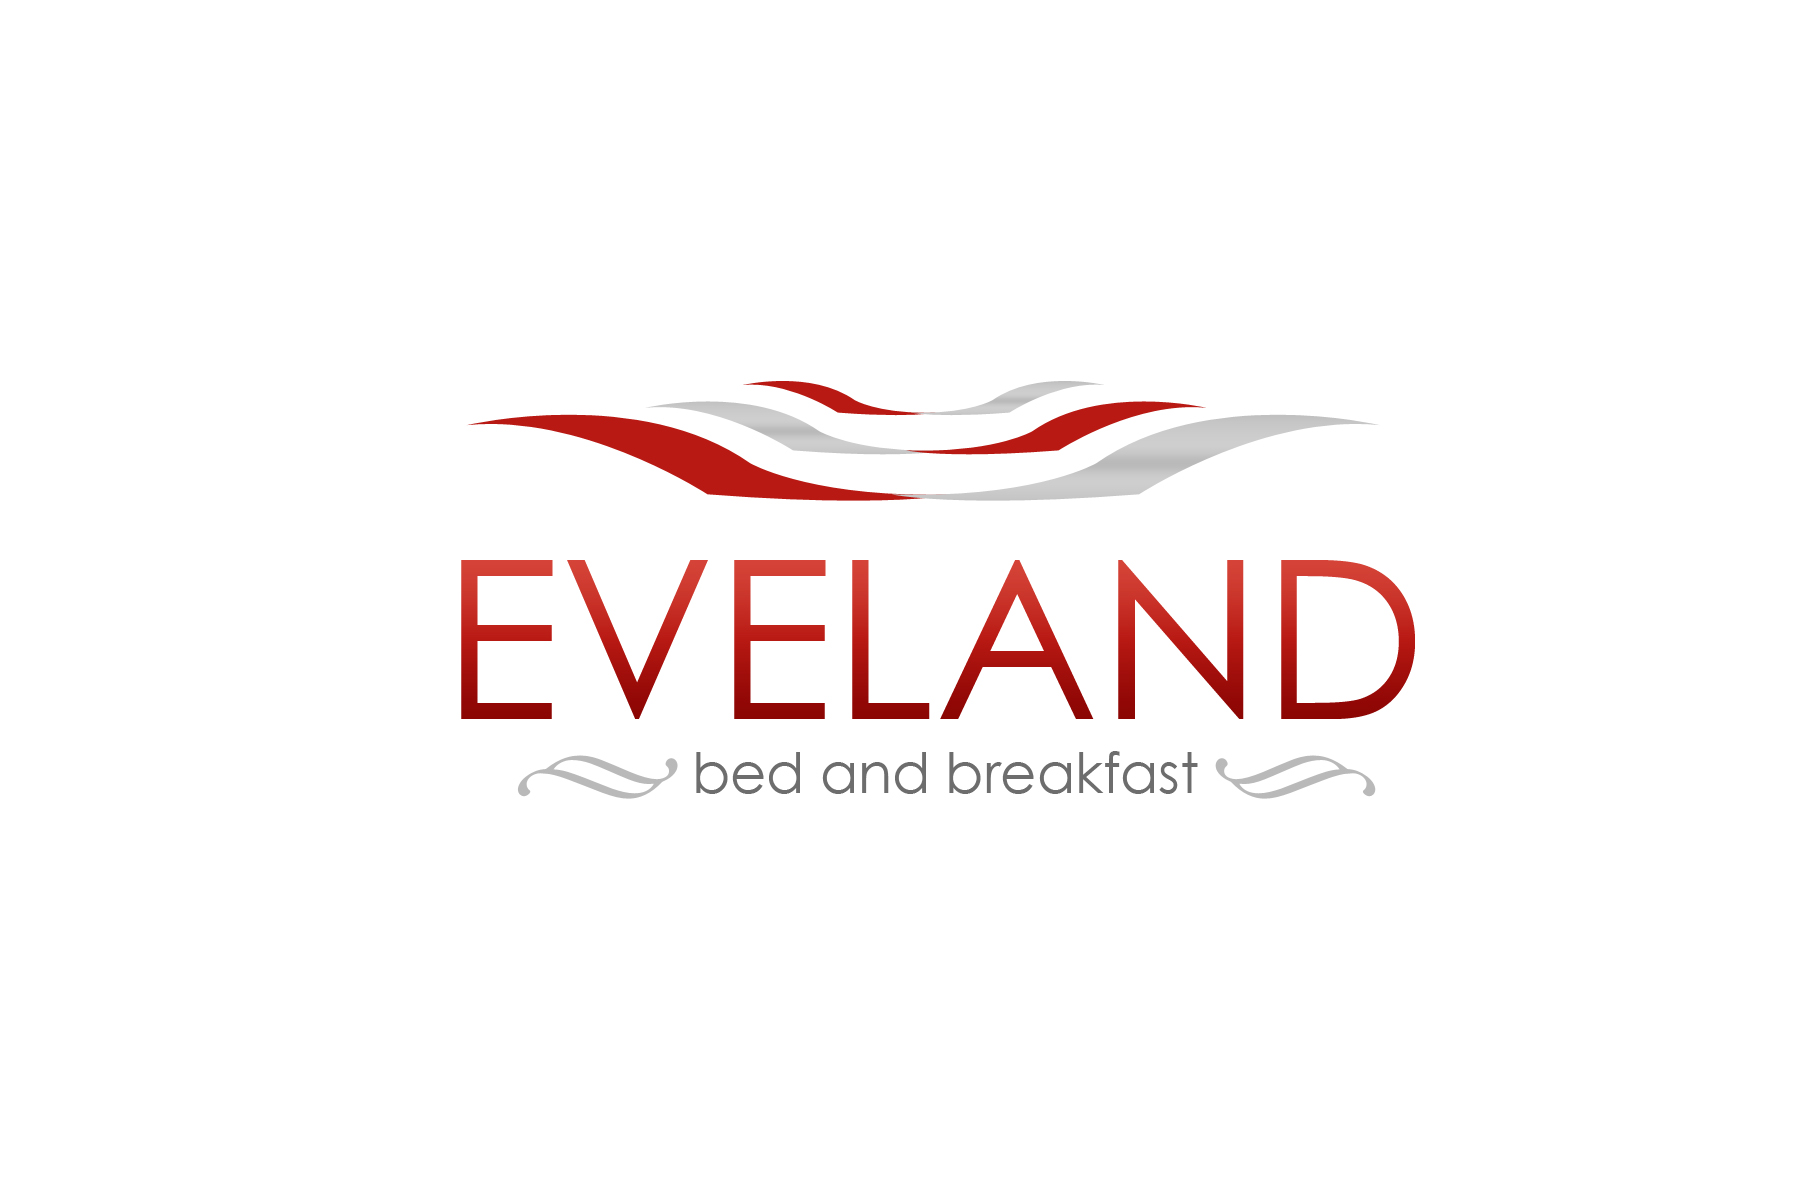 Eveland Bed and Breakfast